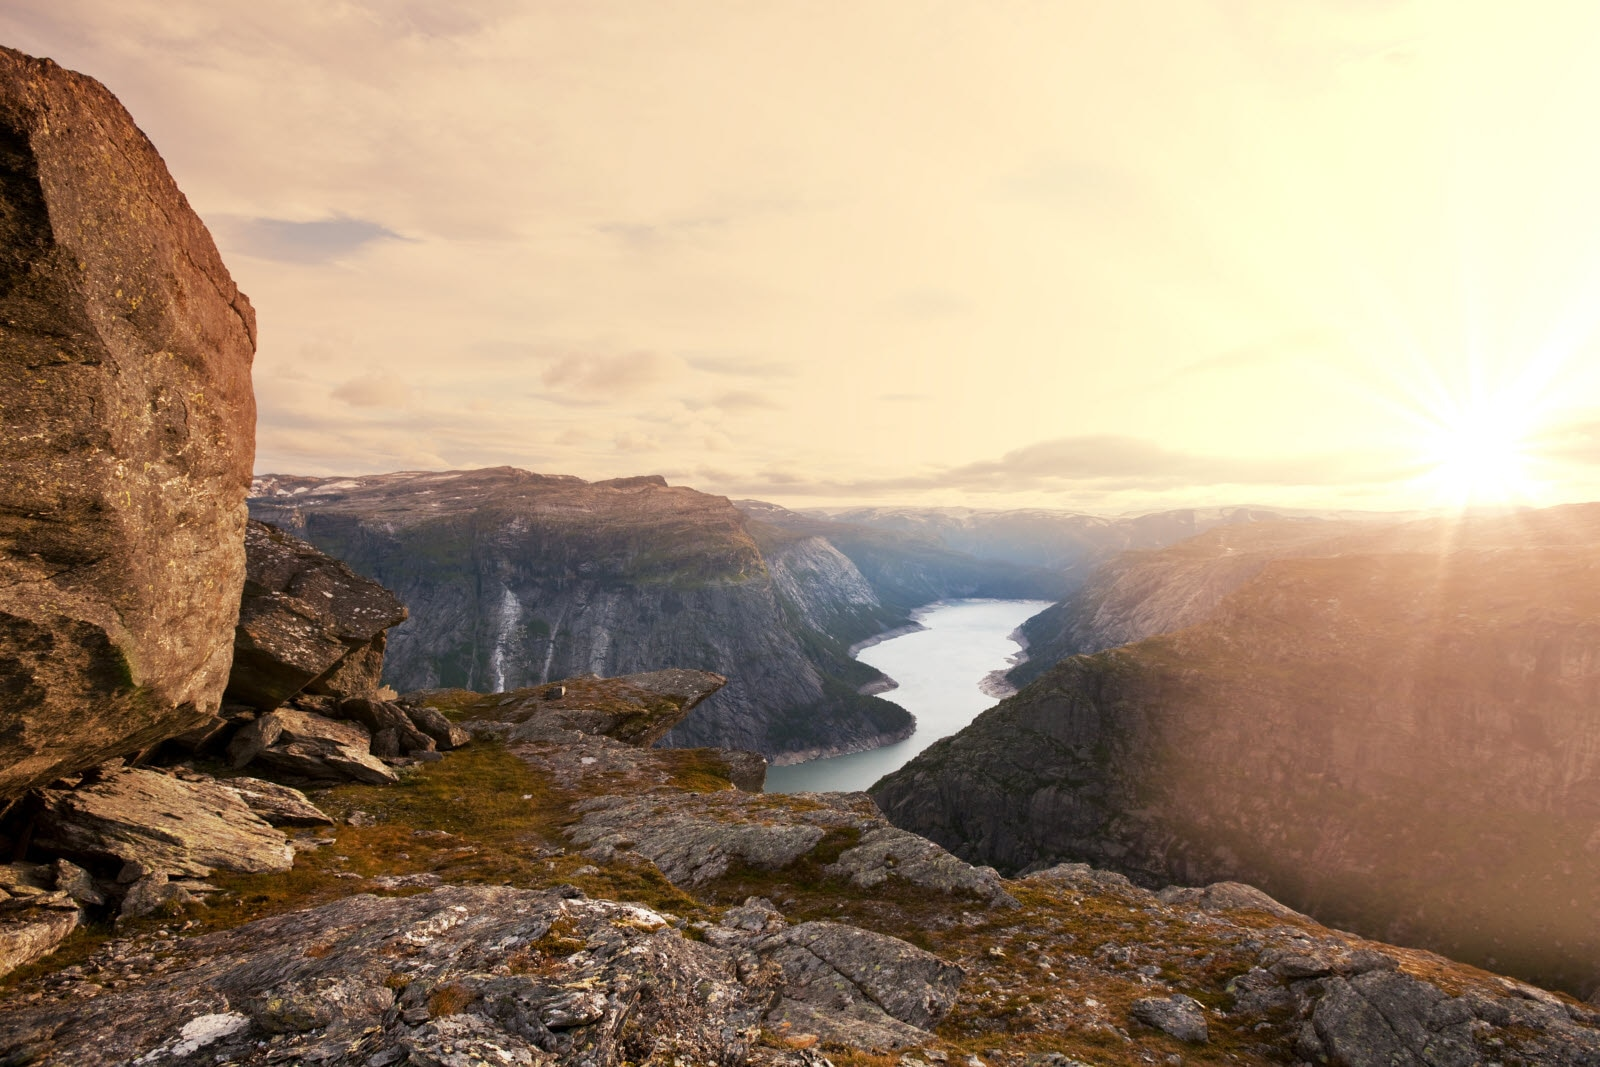 Sunset over the mountains at Trolltunga in Norway.